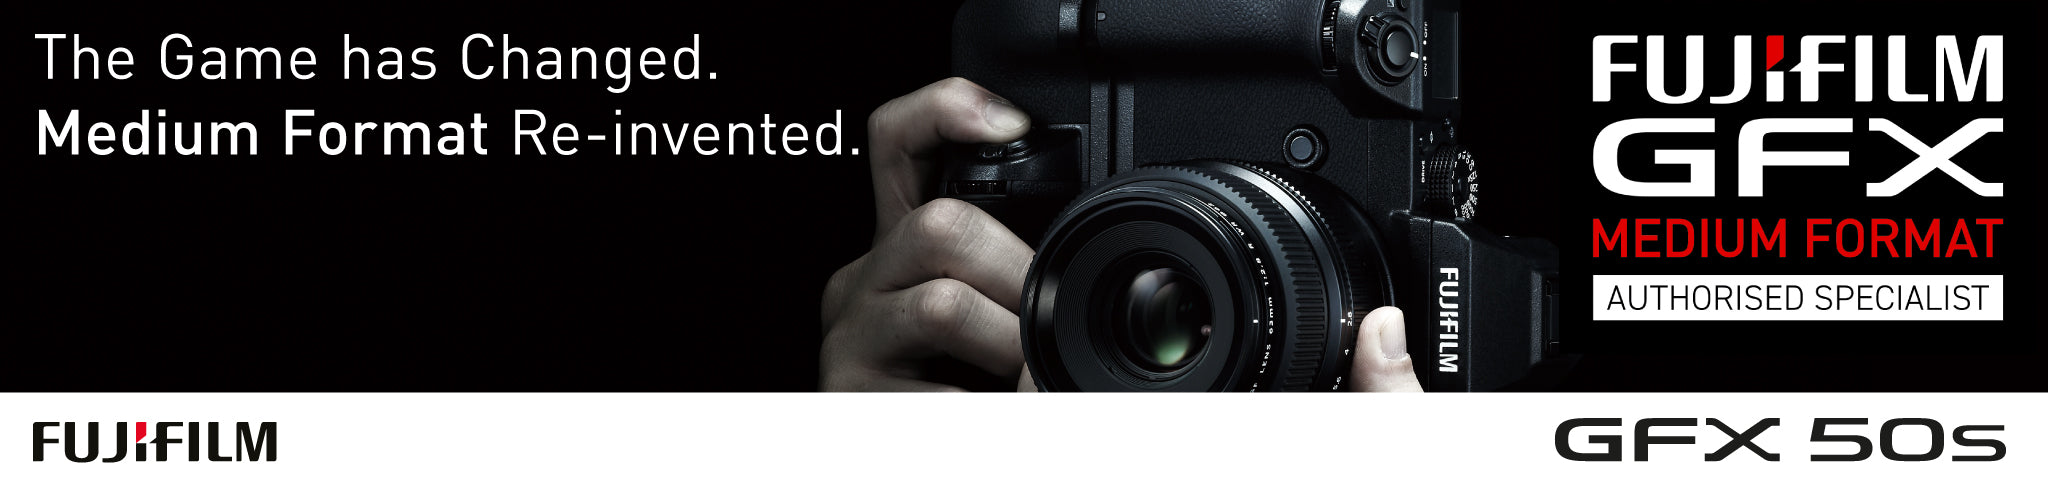 Fujifilm GFX Authorised Stockist